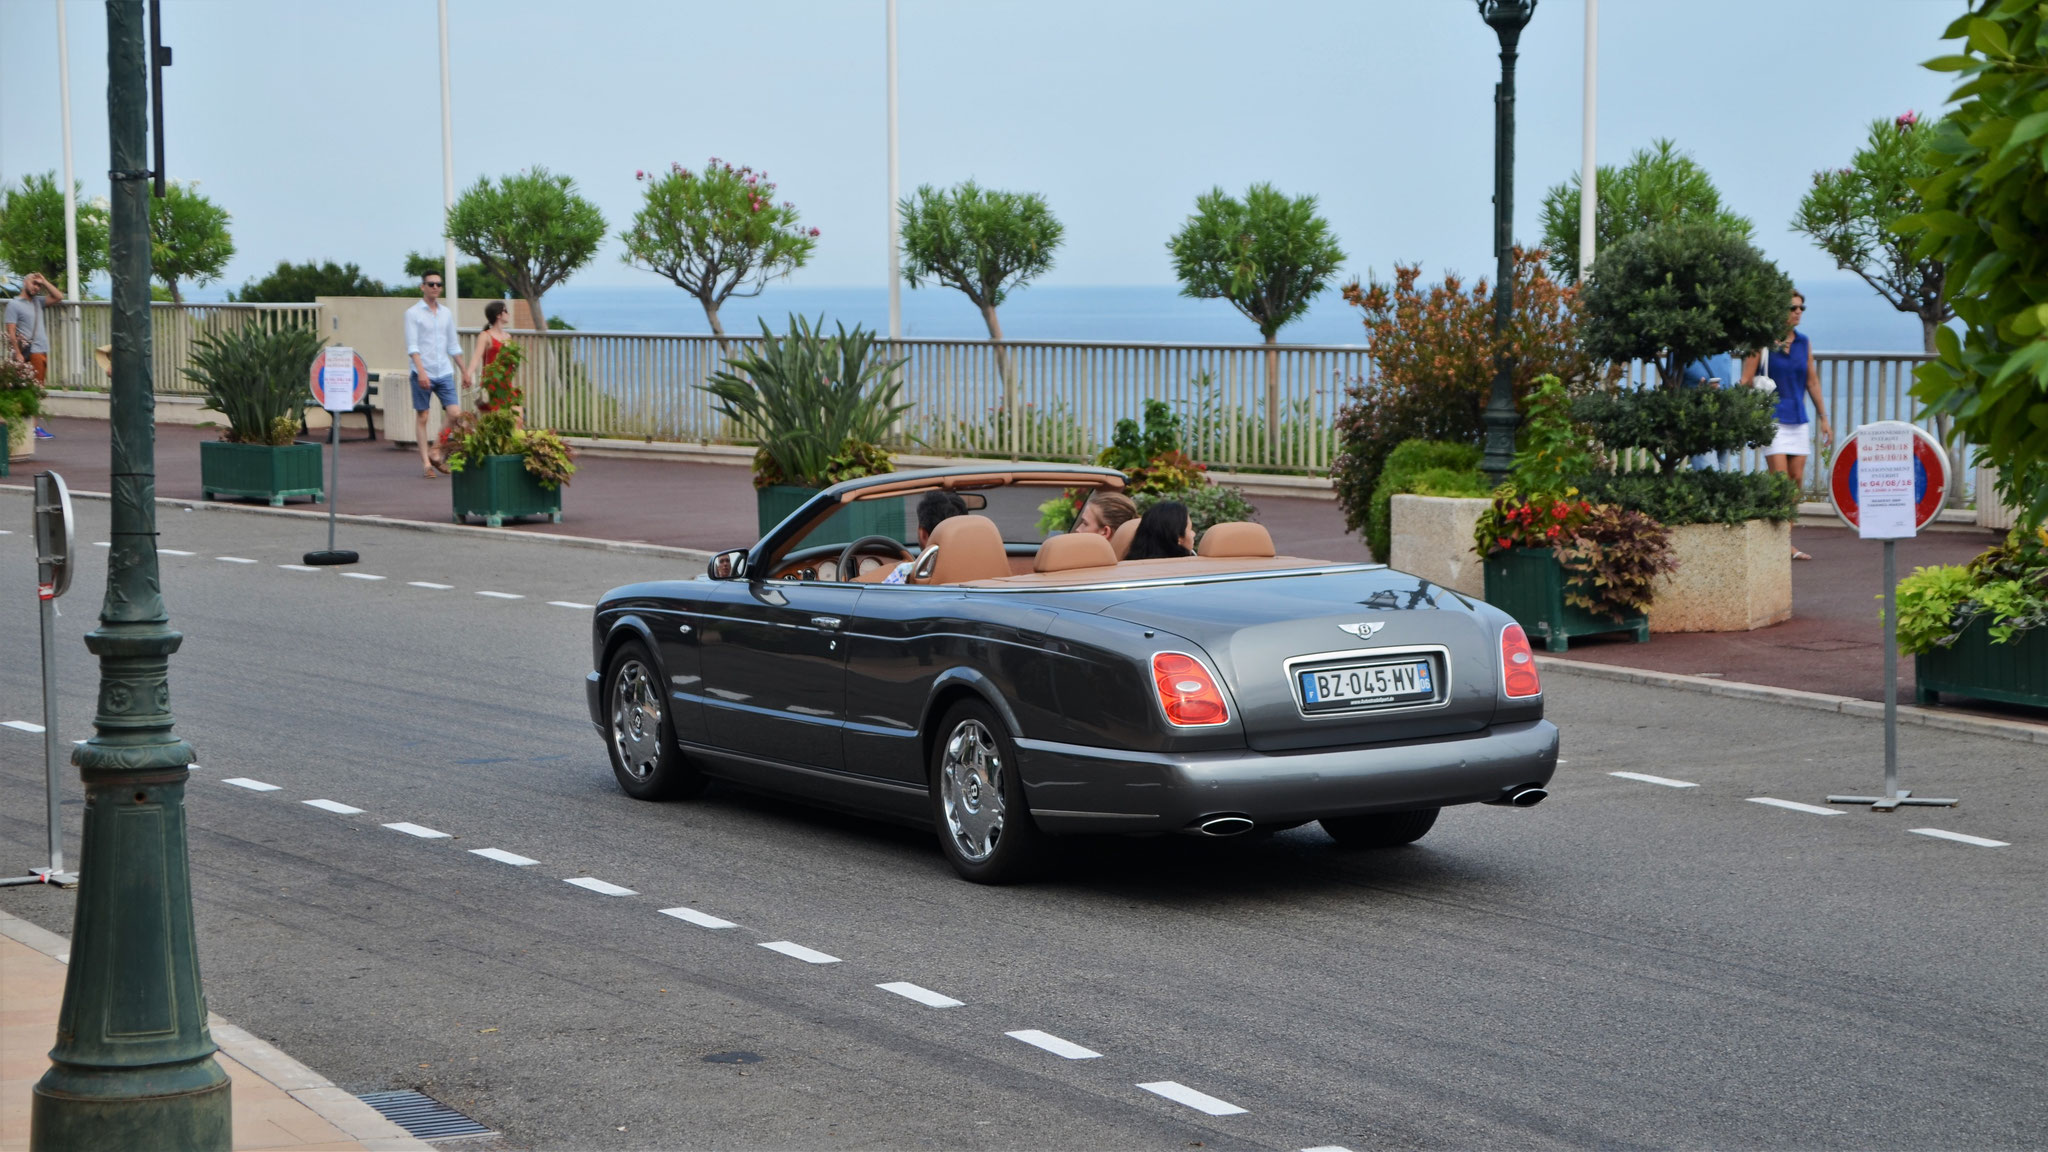 Bentley Azure - BZ-045-MV-06 (FRA)